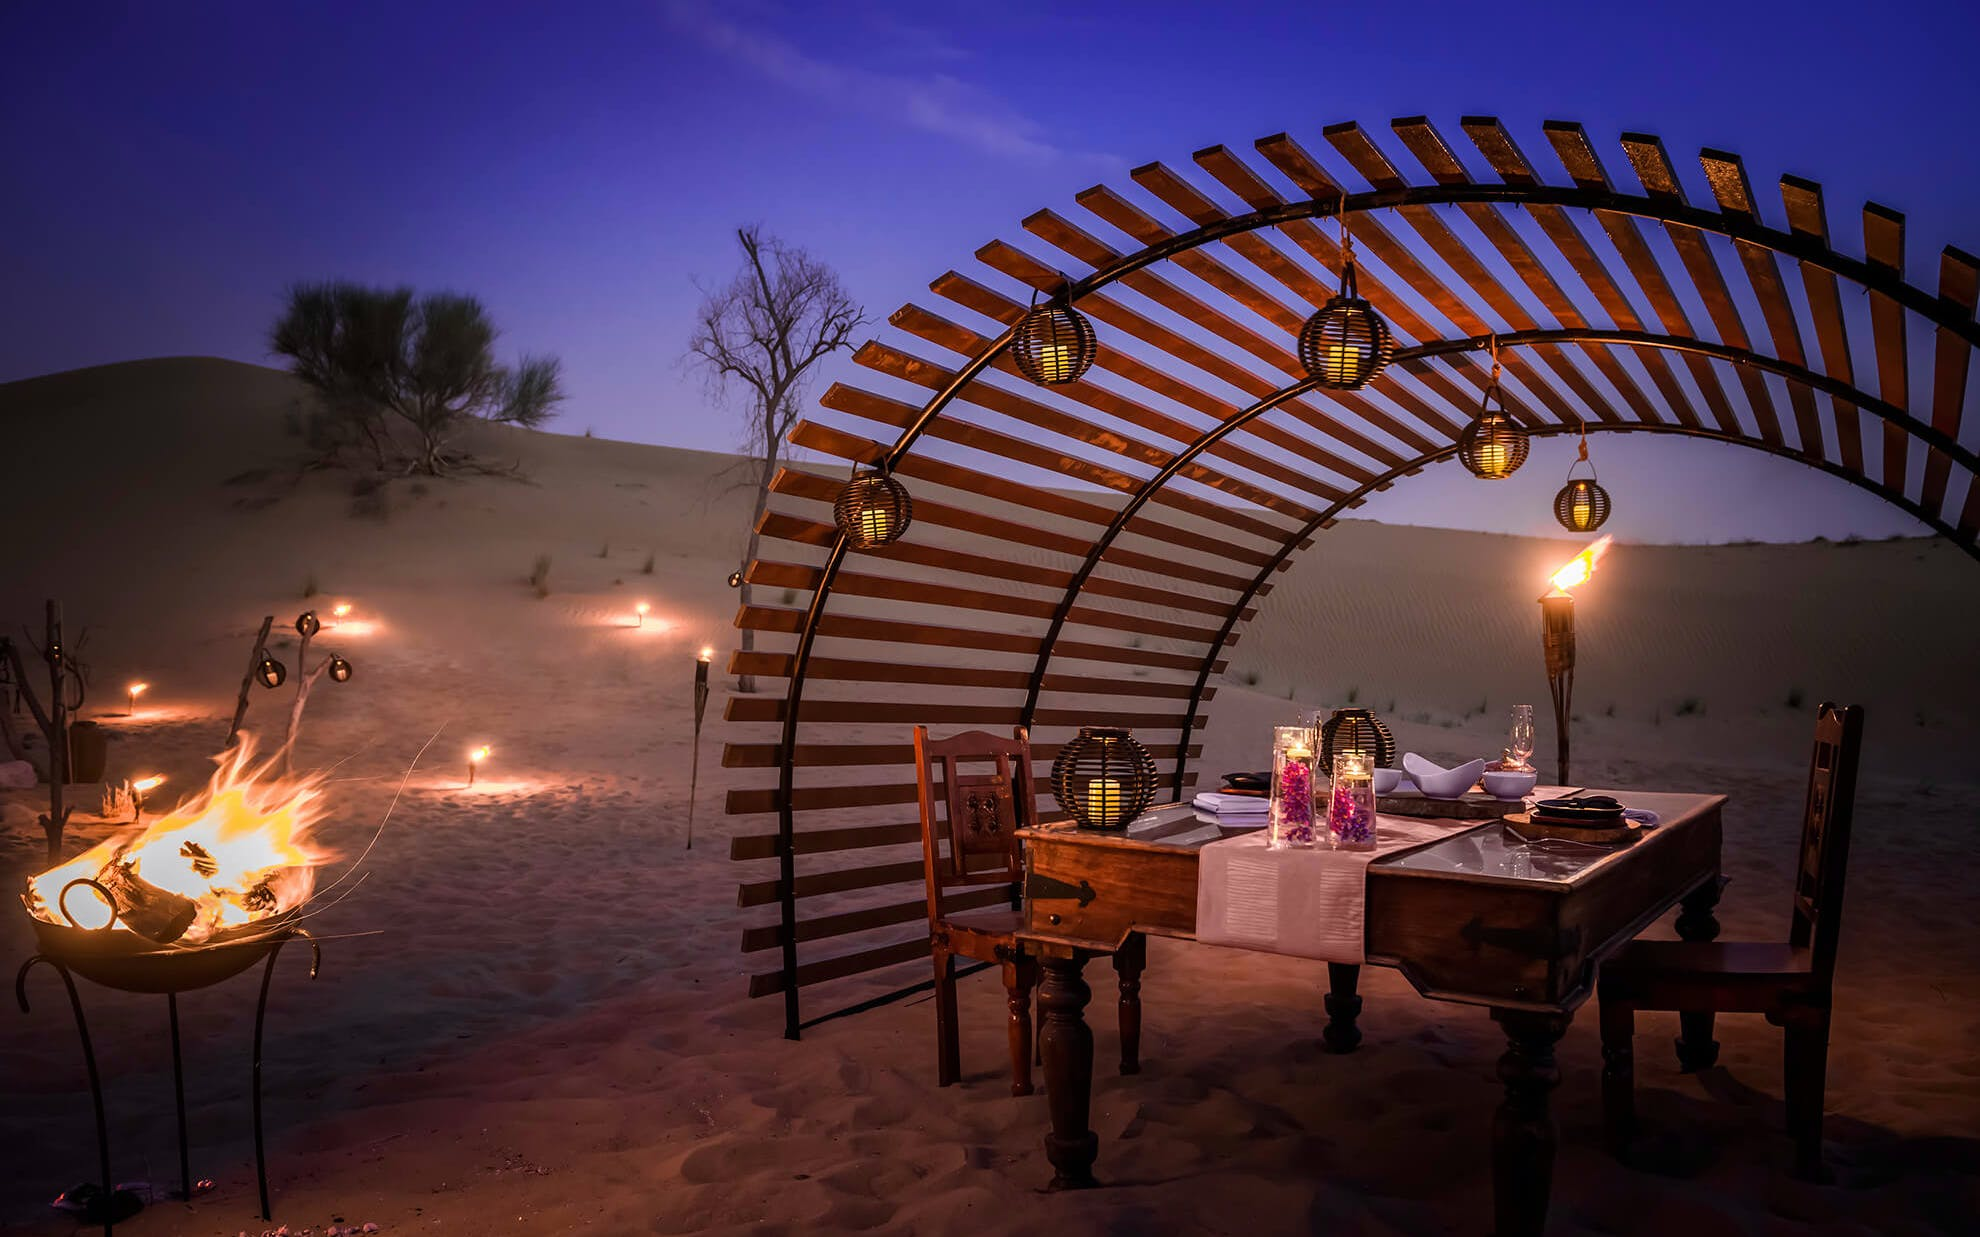 Romantic Dinner Desert Safari